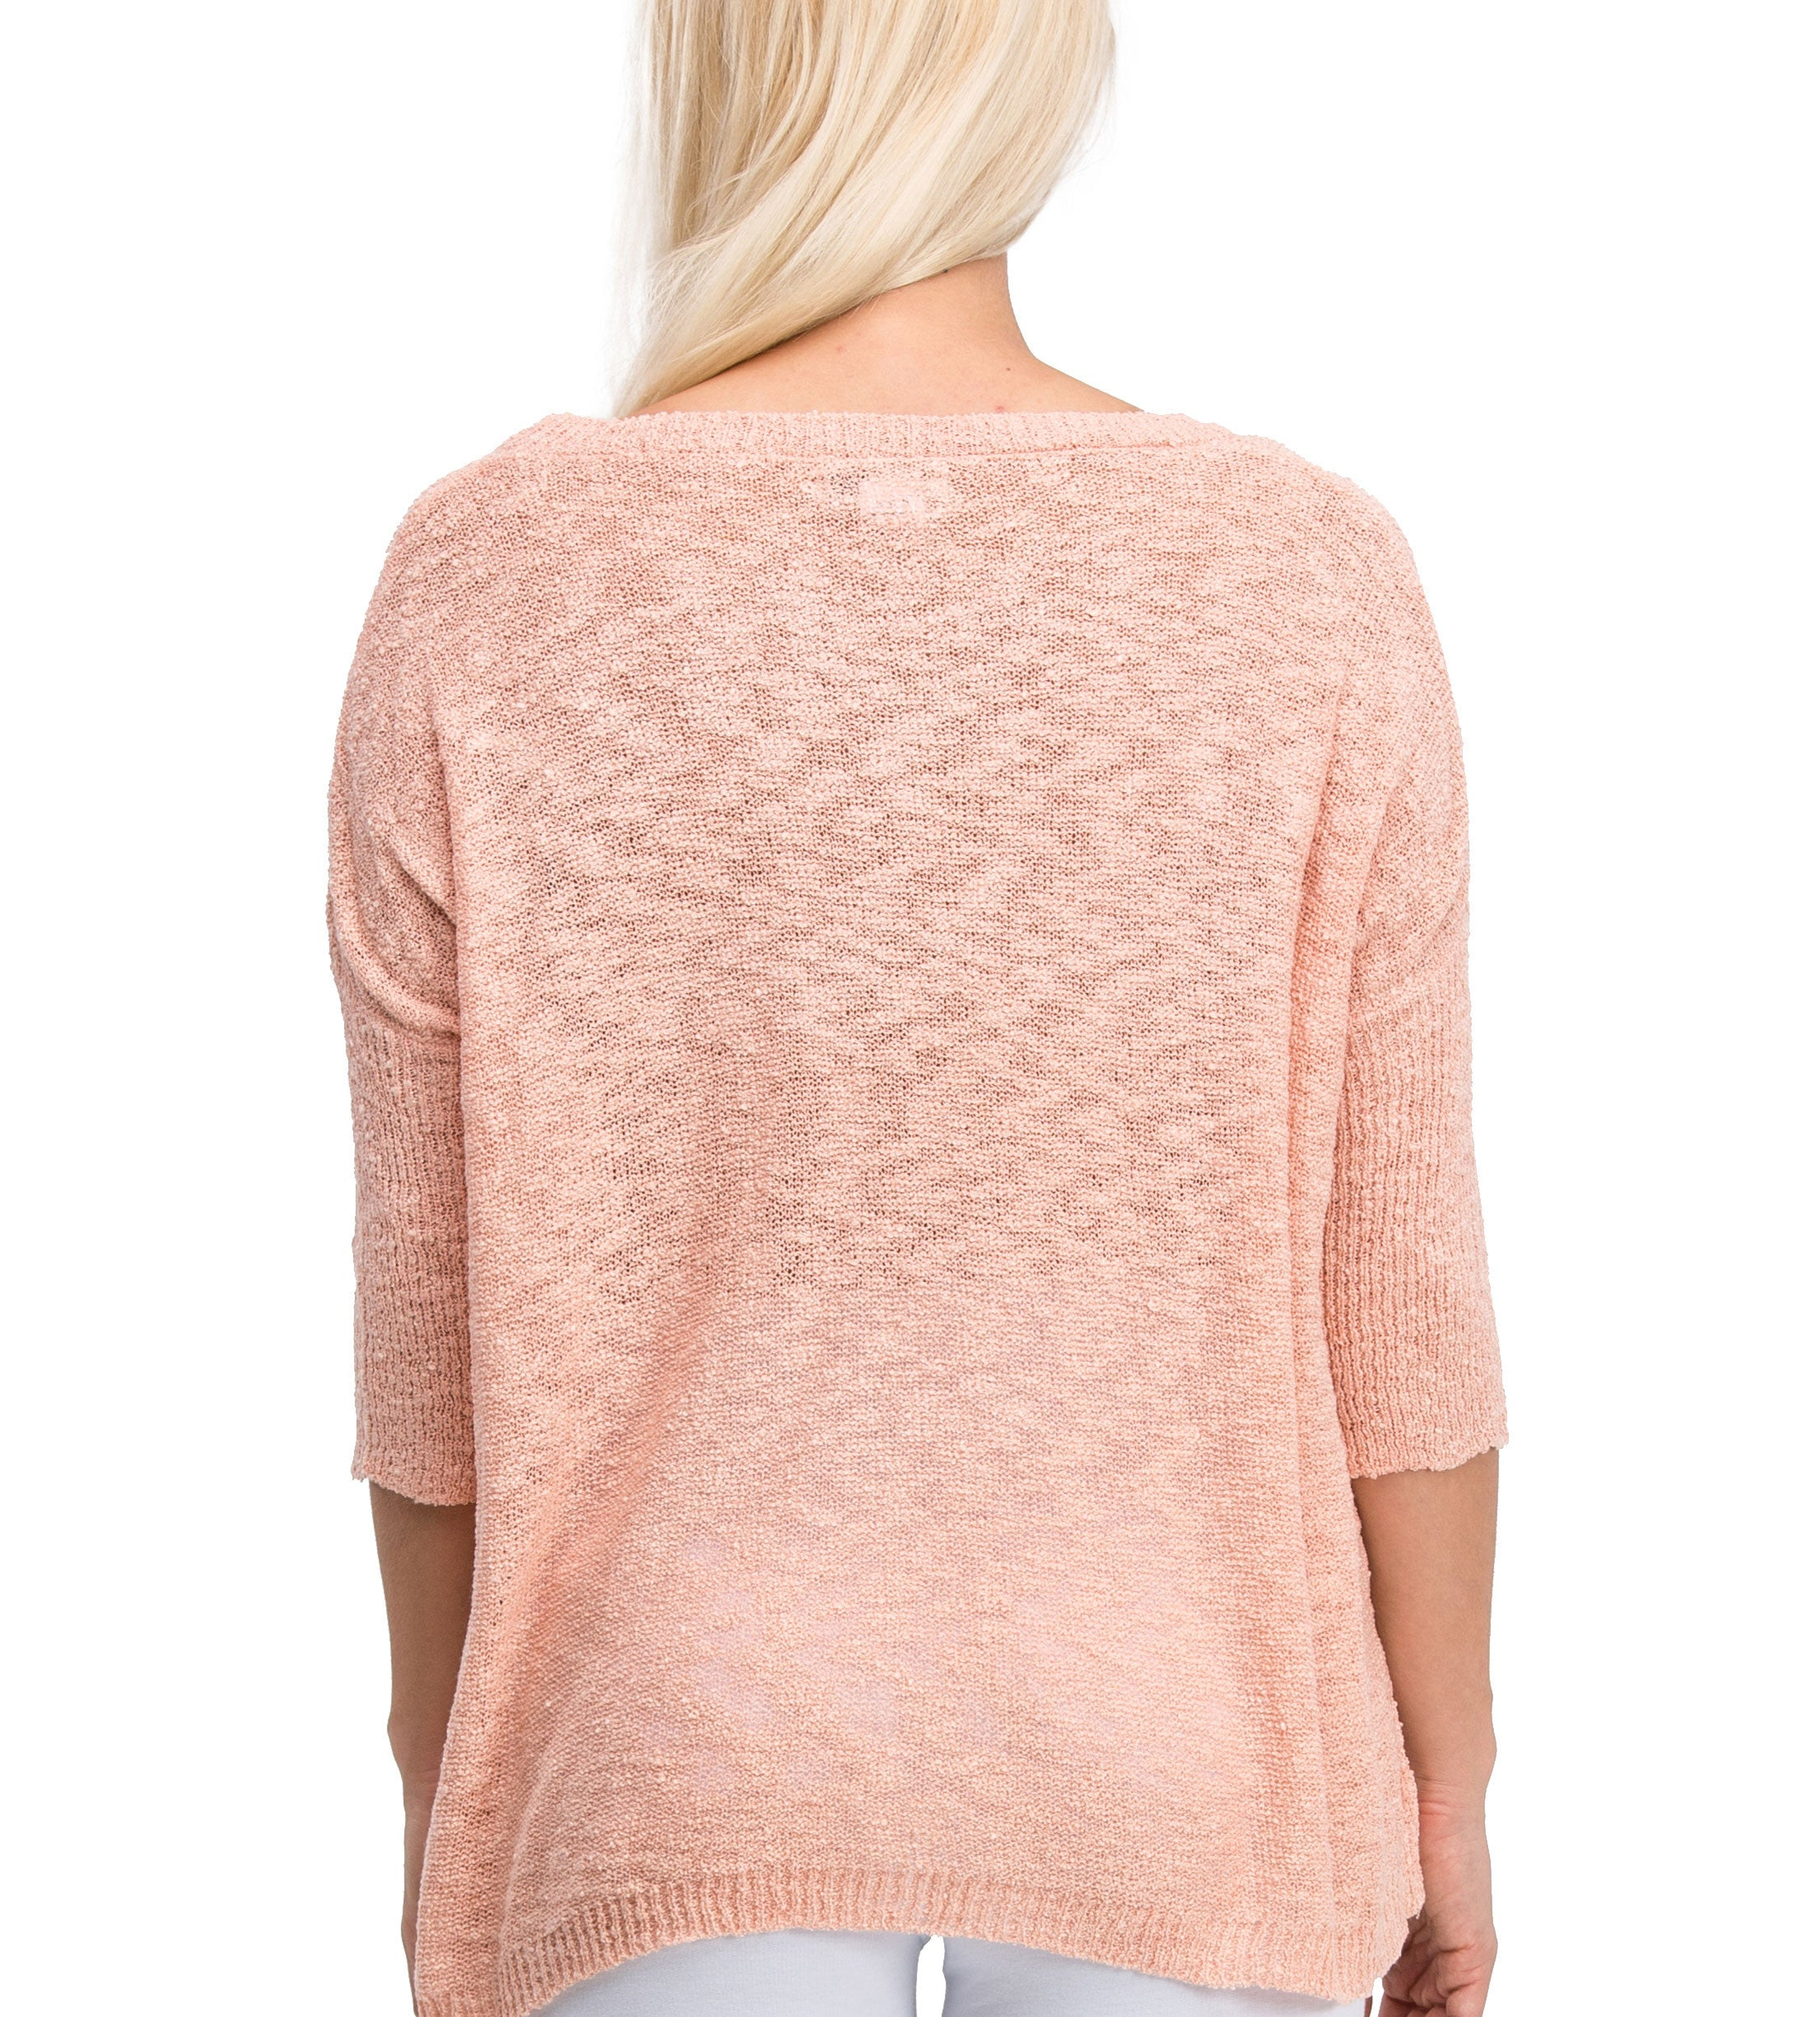 Comfy Casual Elegant Lightweight Sweater Dress (Pink) - Poplooks